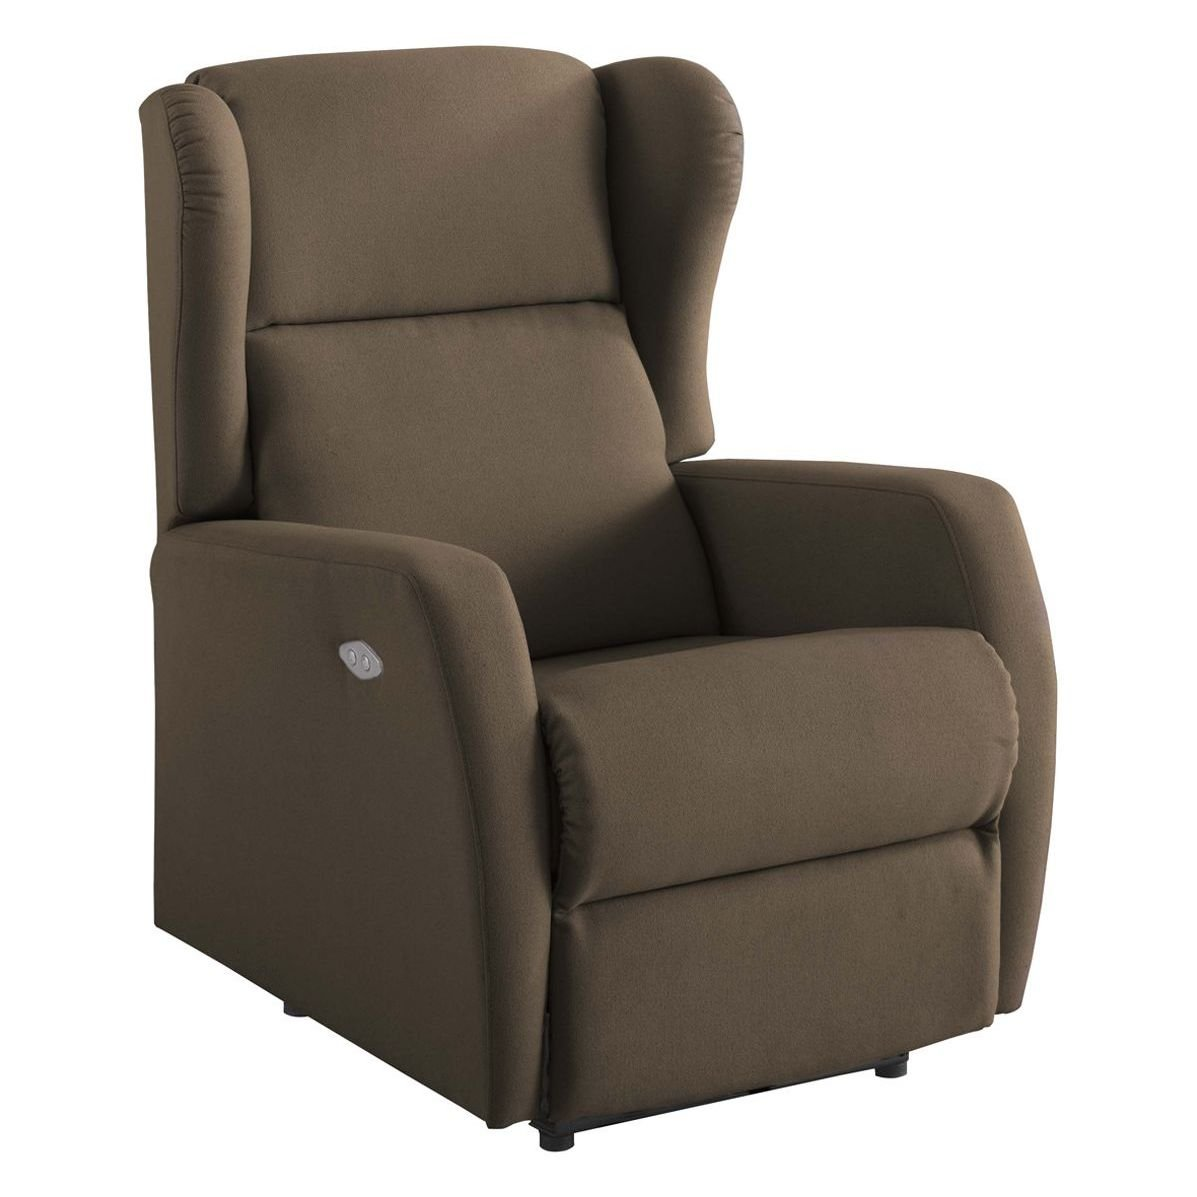 Sillones el corte ingl s for Sillon reclinable tela